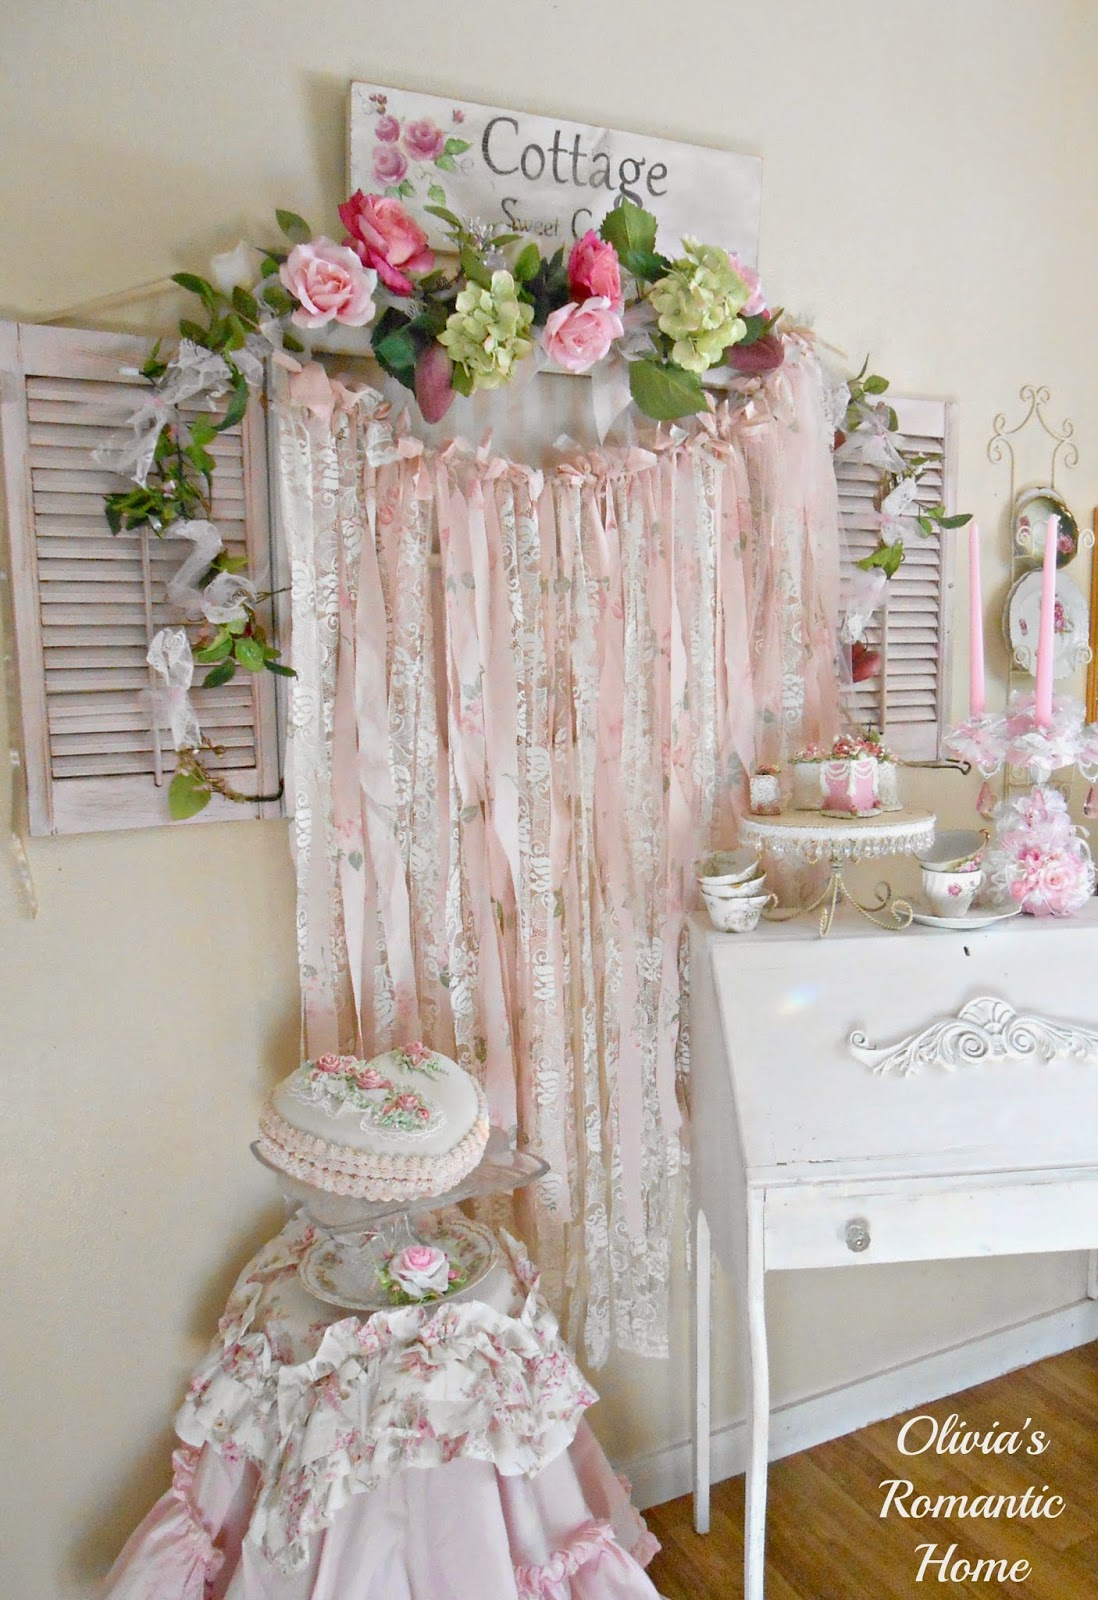 Shabby Chic Beach Cottage Tour: Olivia's Romantic Home: Shabby Chic Rag Garlands